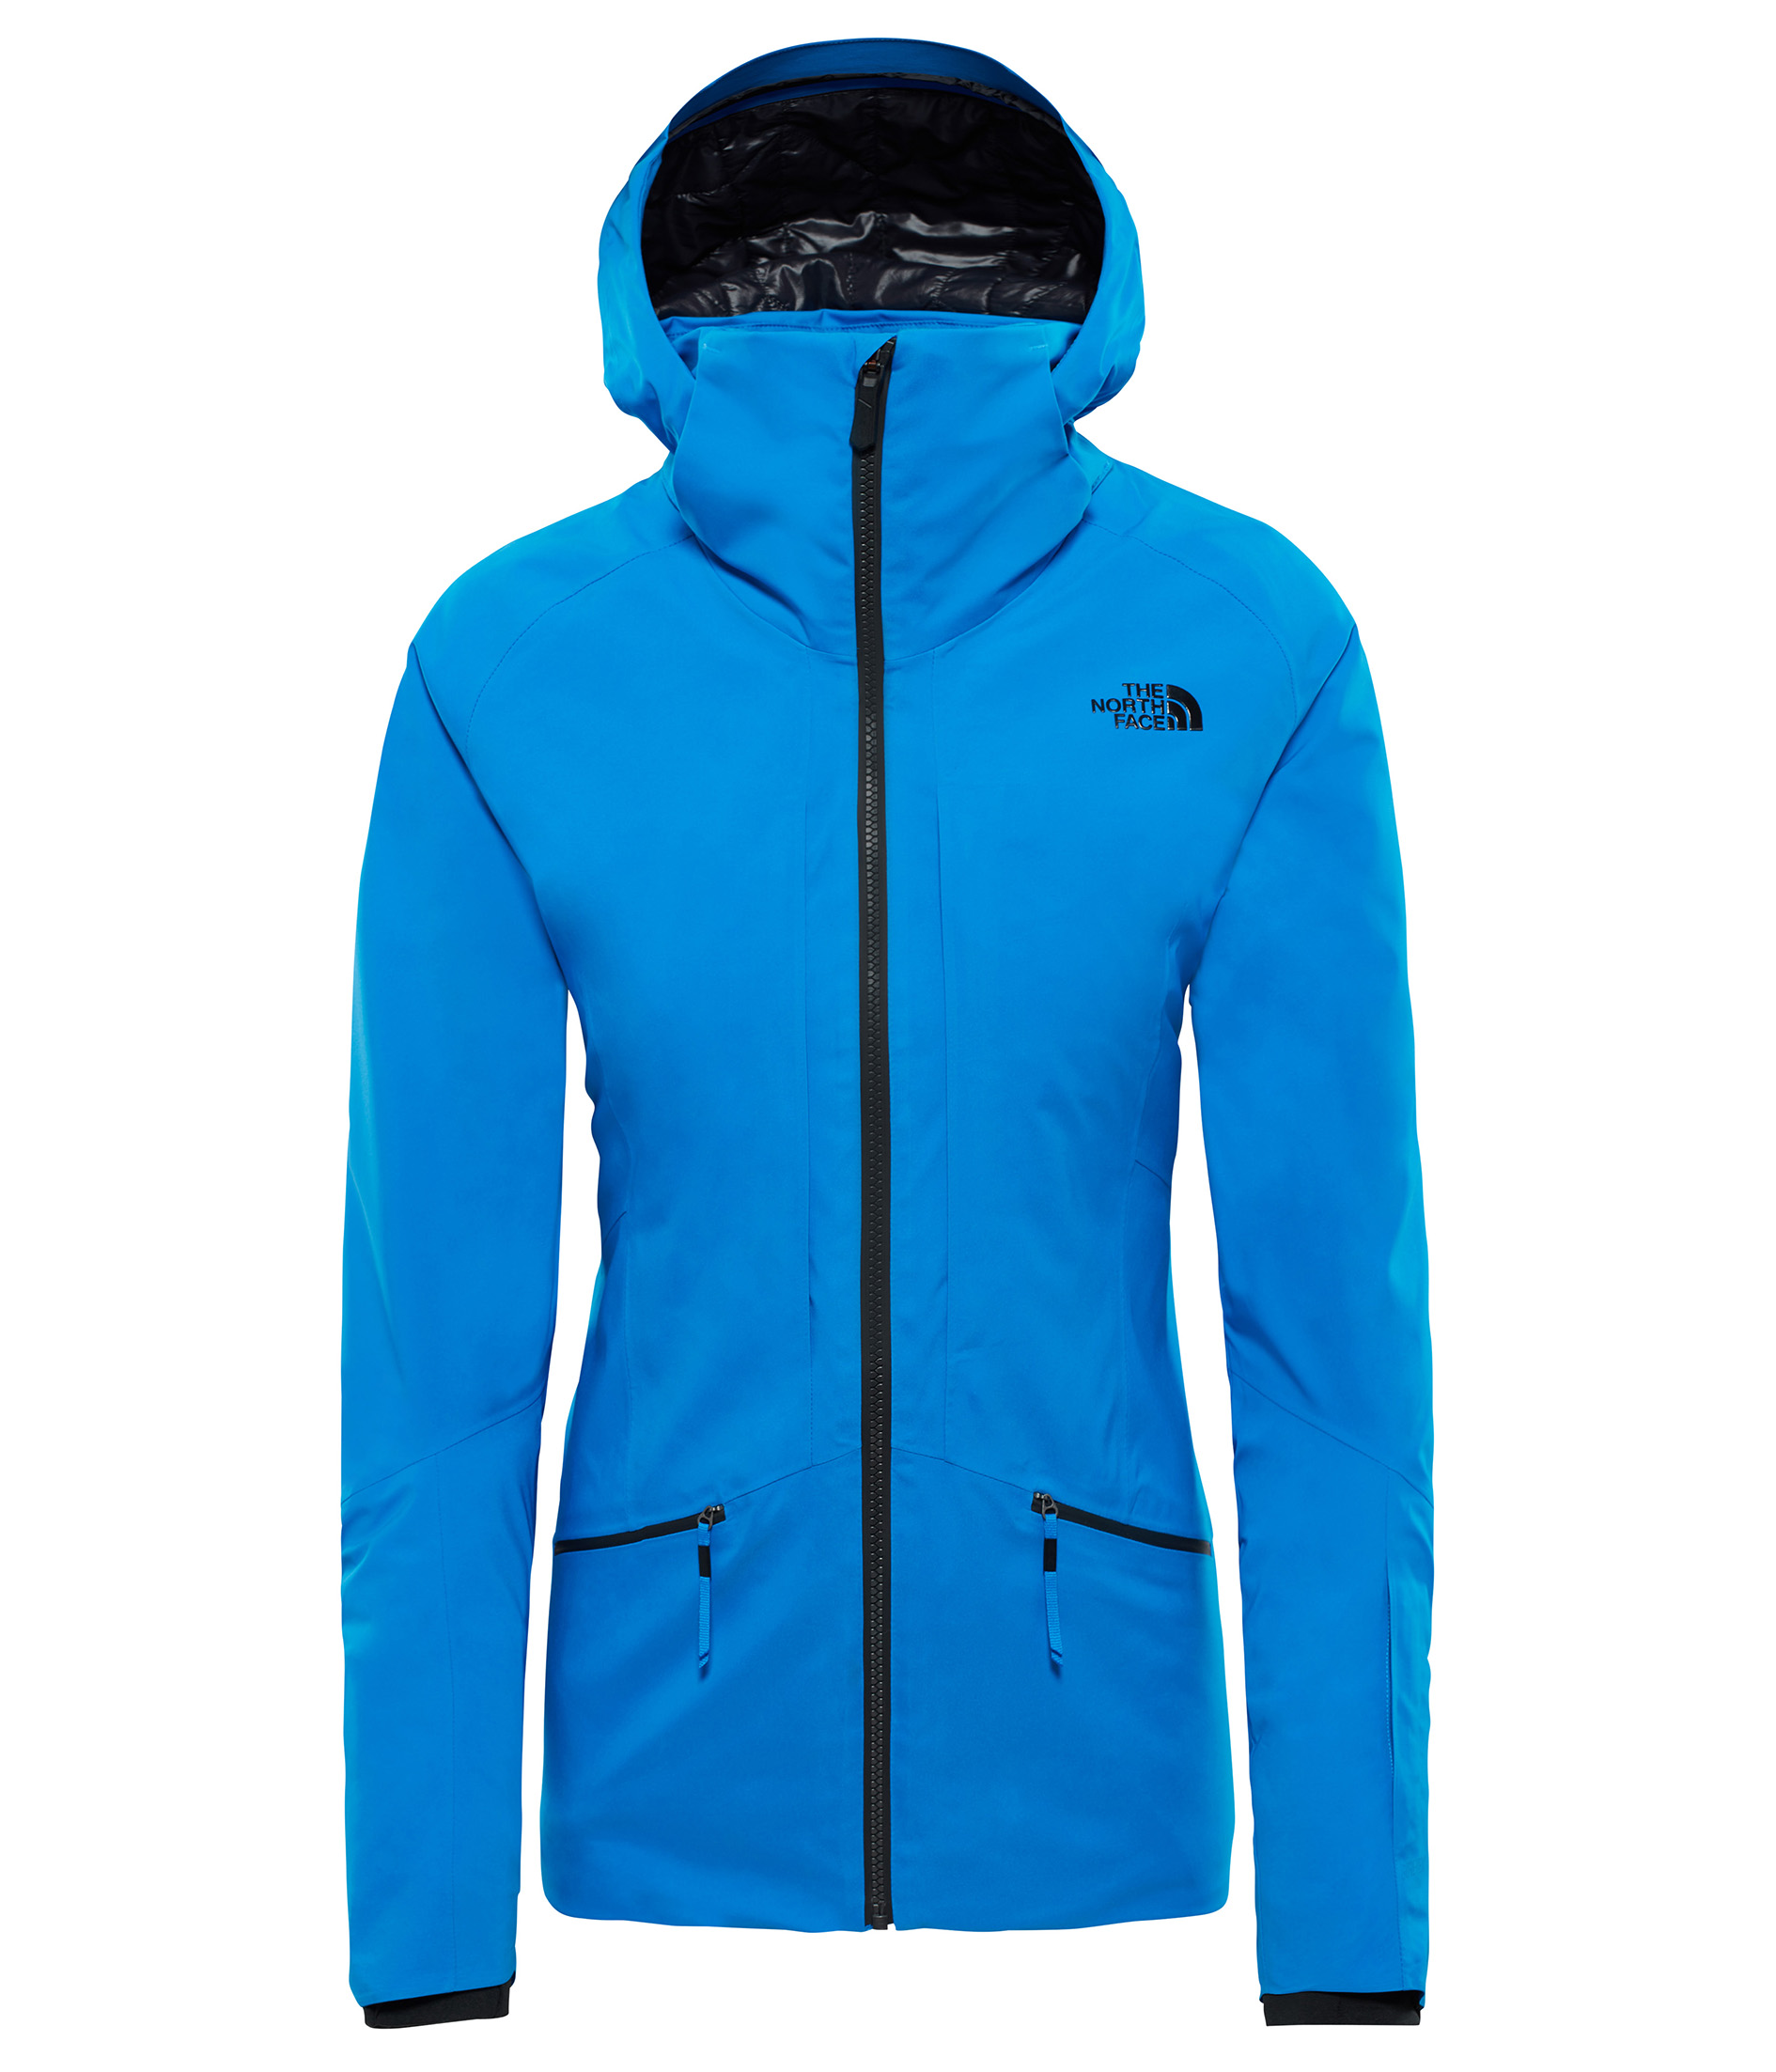 THE NORTH FACE W ANONYM JACKET, BOMBER BLUE velikost: M